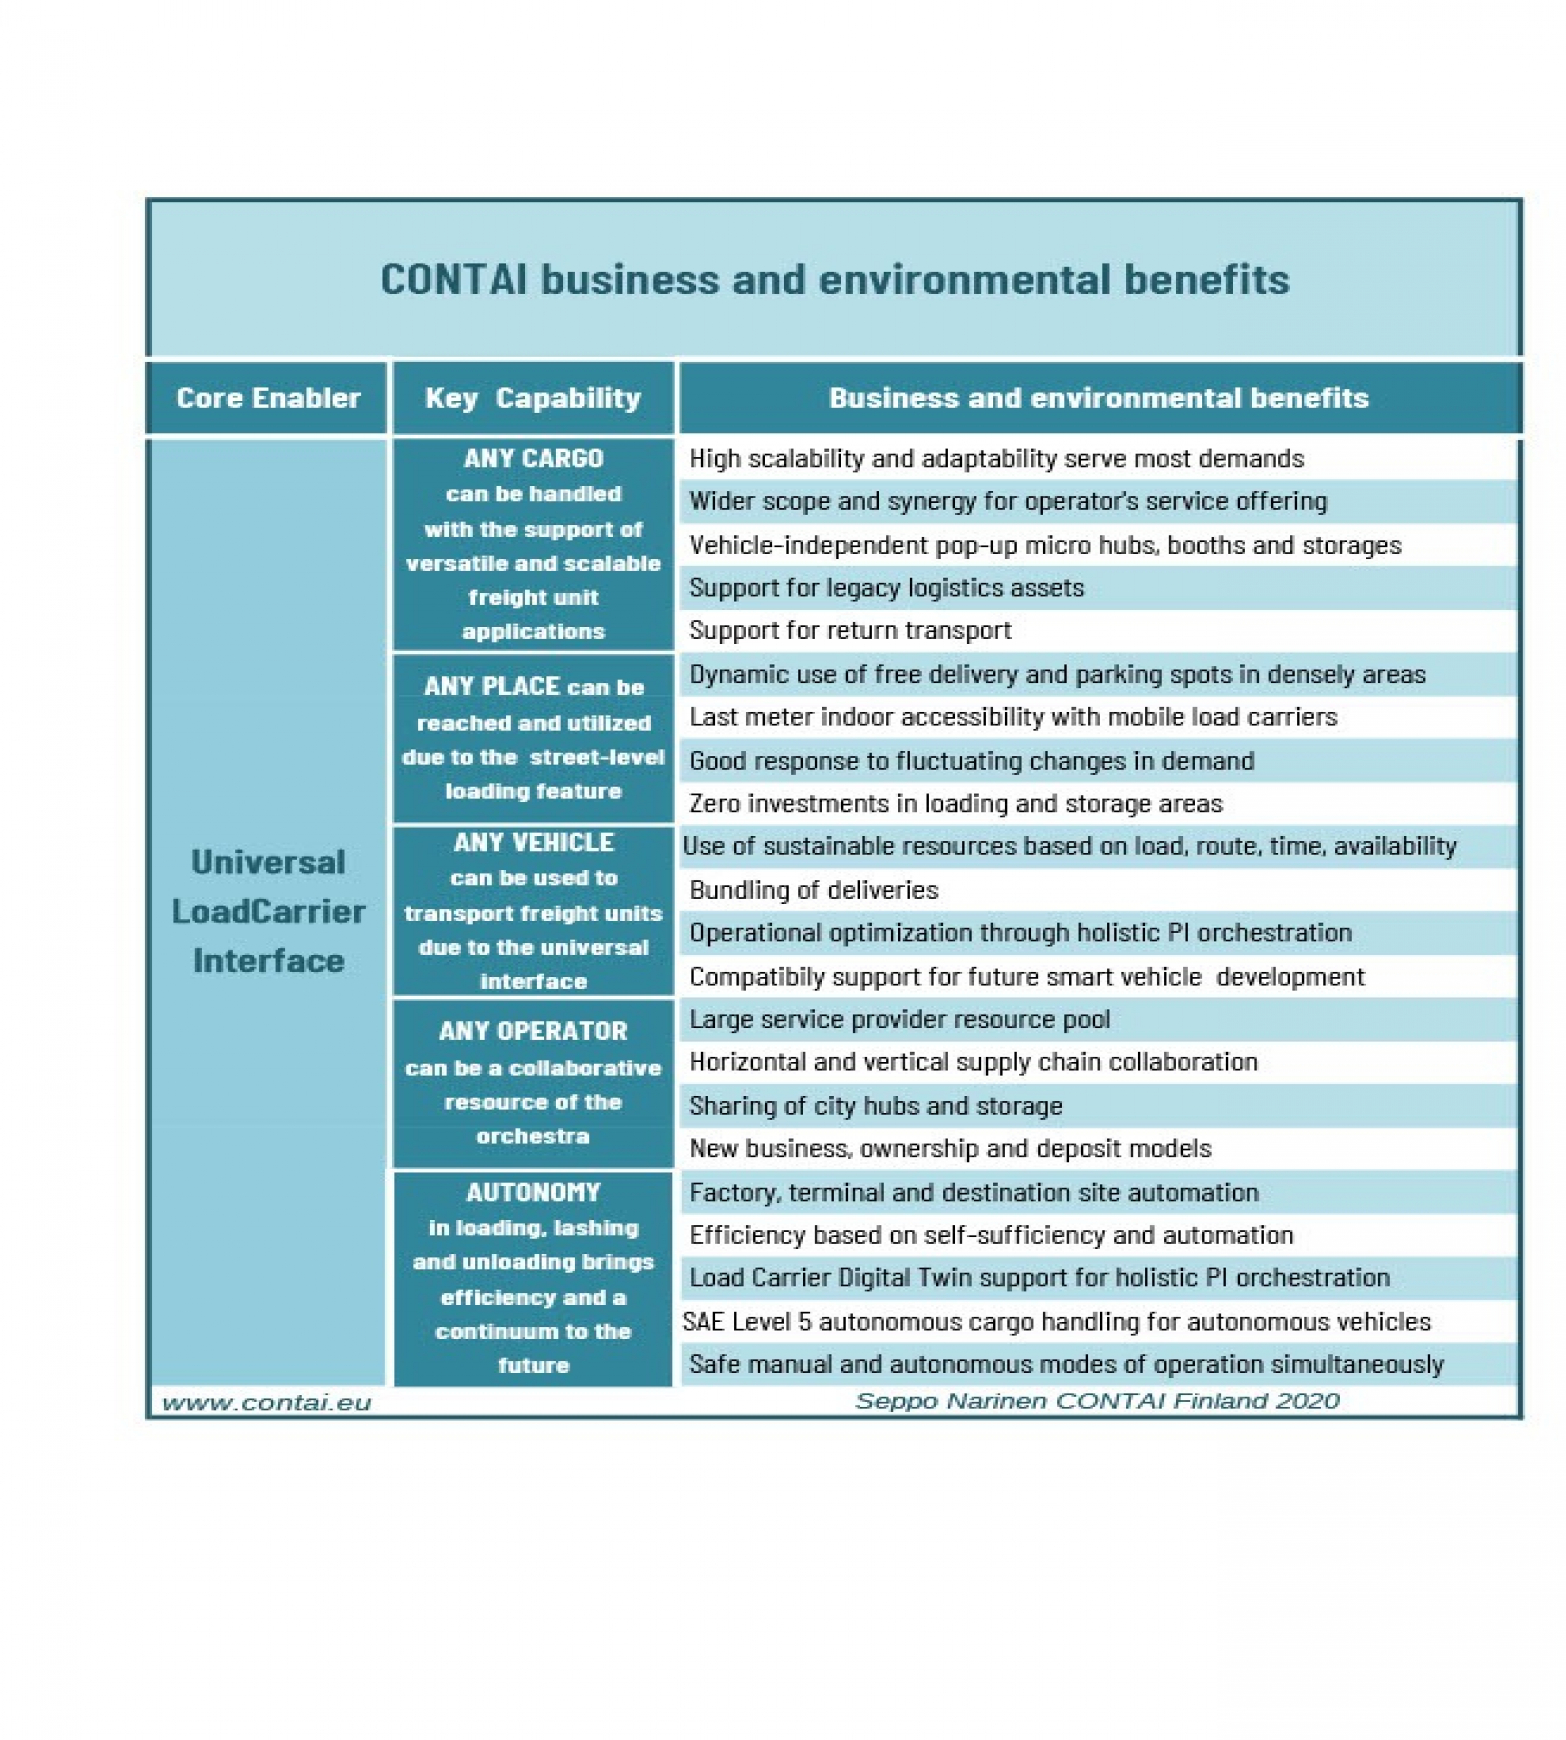 gallery/contai business and environmental benefits1024_1